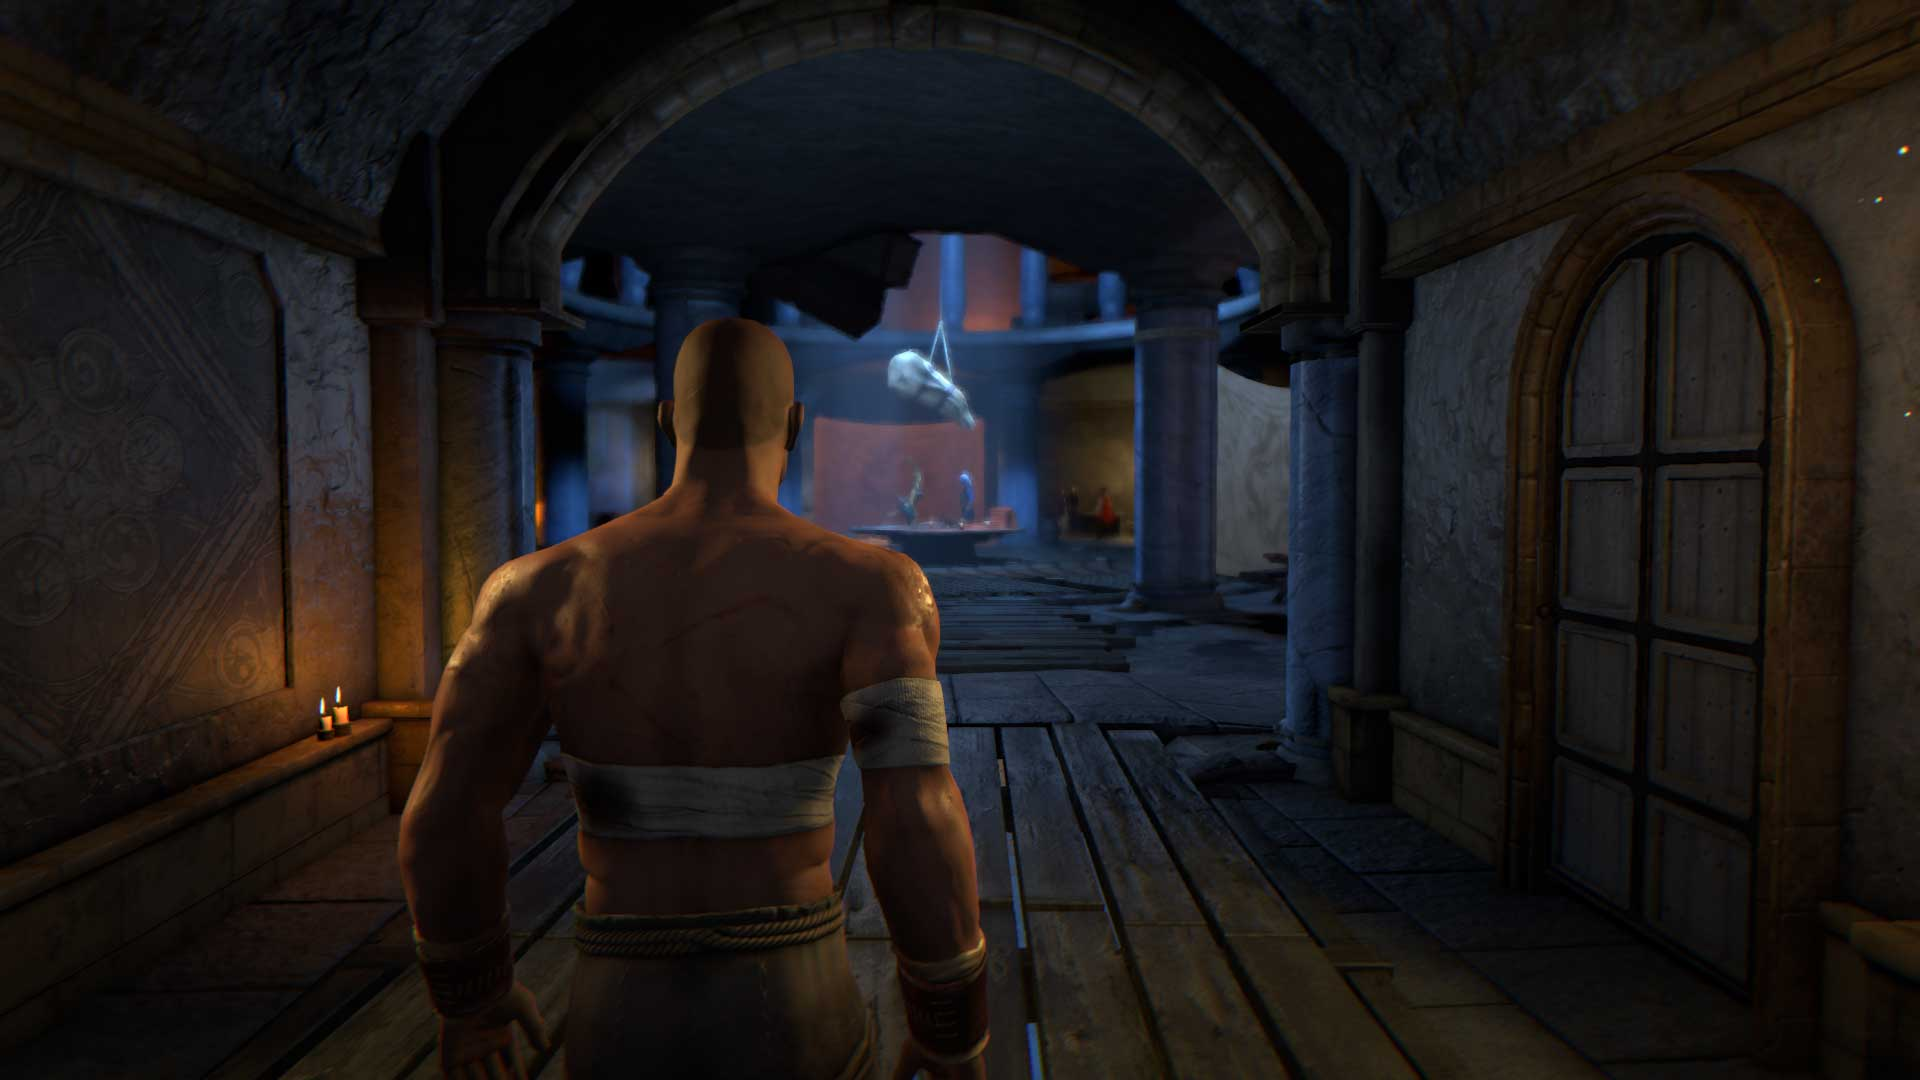 dreamfall_chapters_unity_5_1